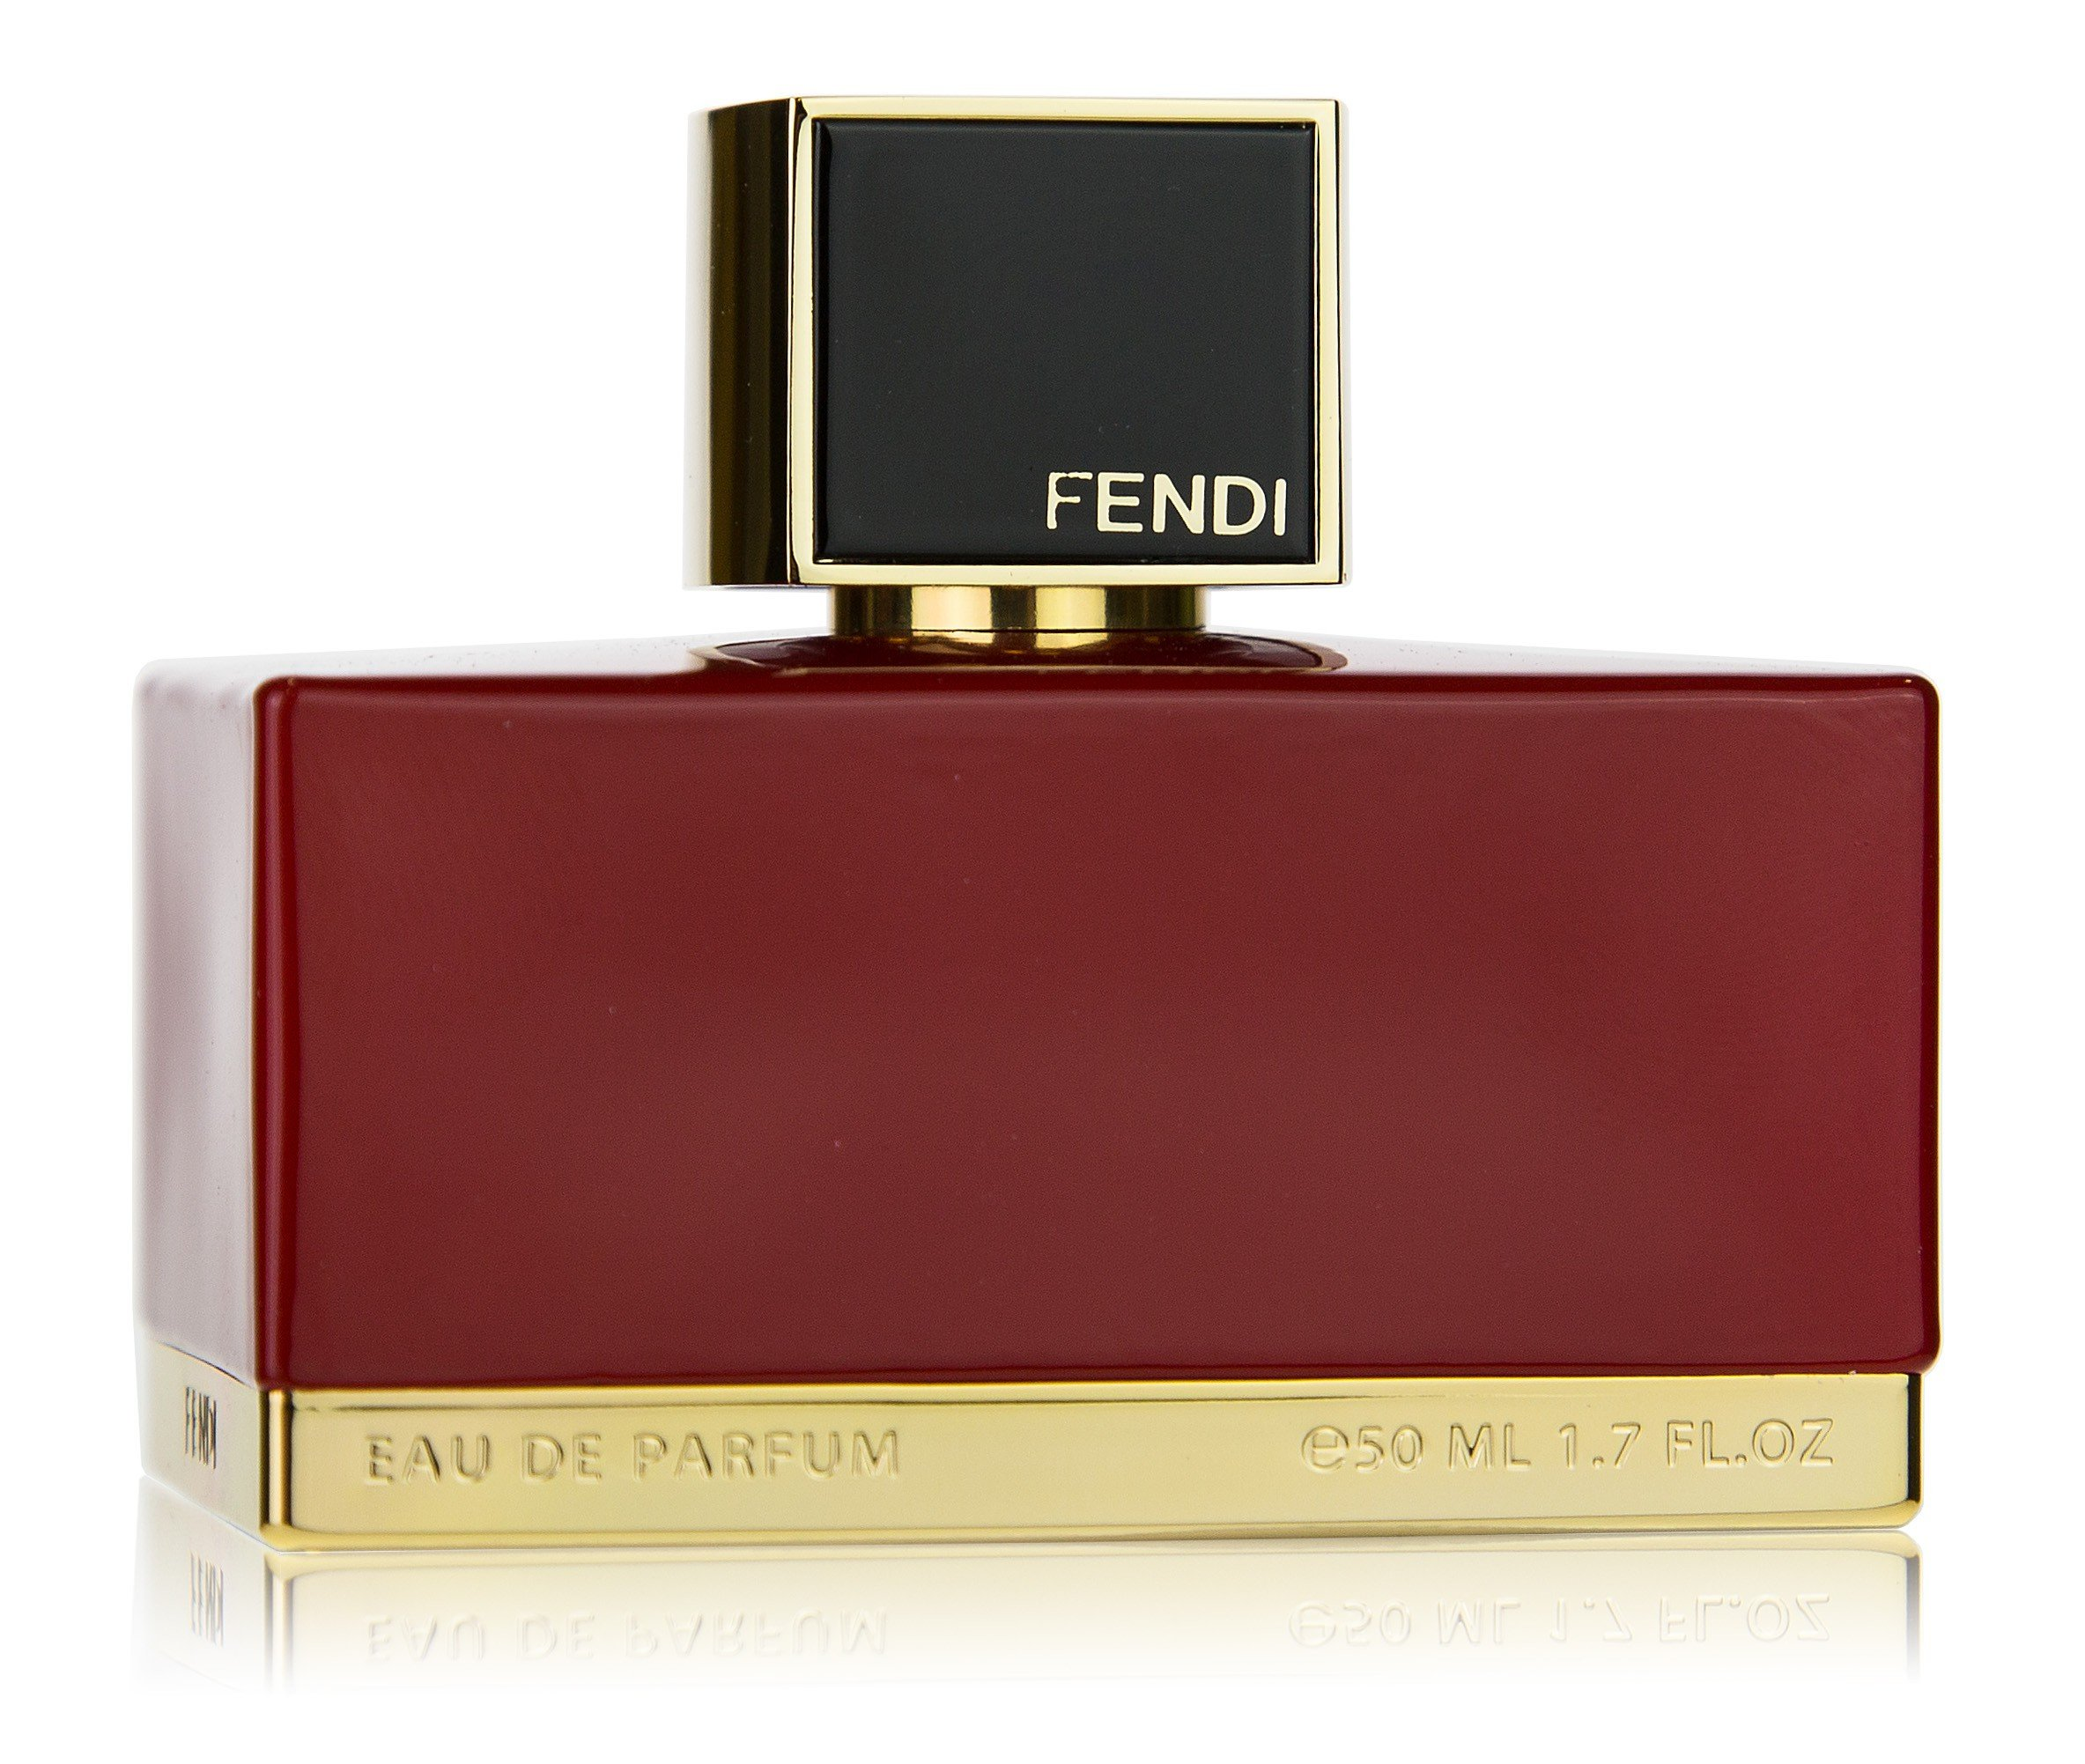 FENDI L'ACQUAROSSA by Fendi for WOMEN: EAU DE PARFUM SPRAY 1.7 OZ